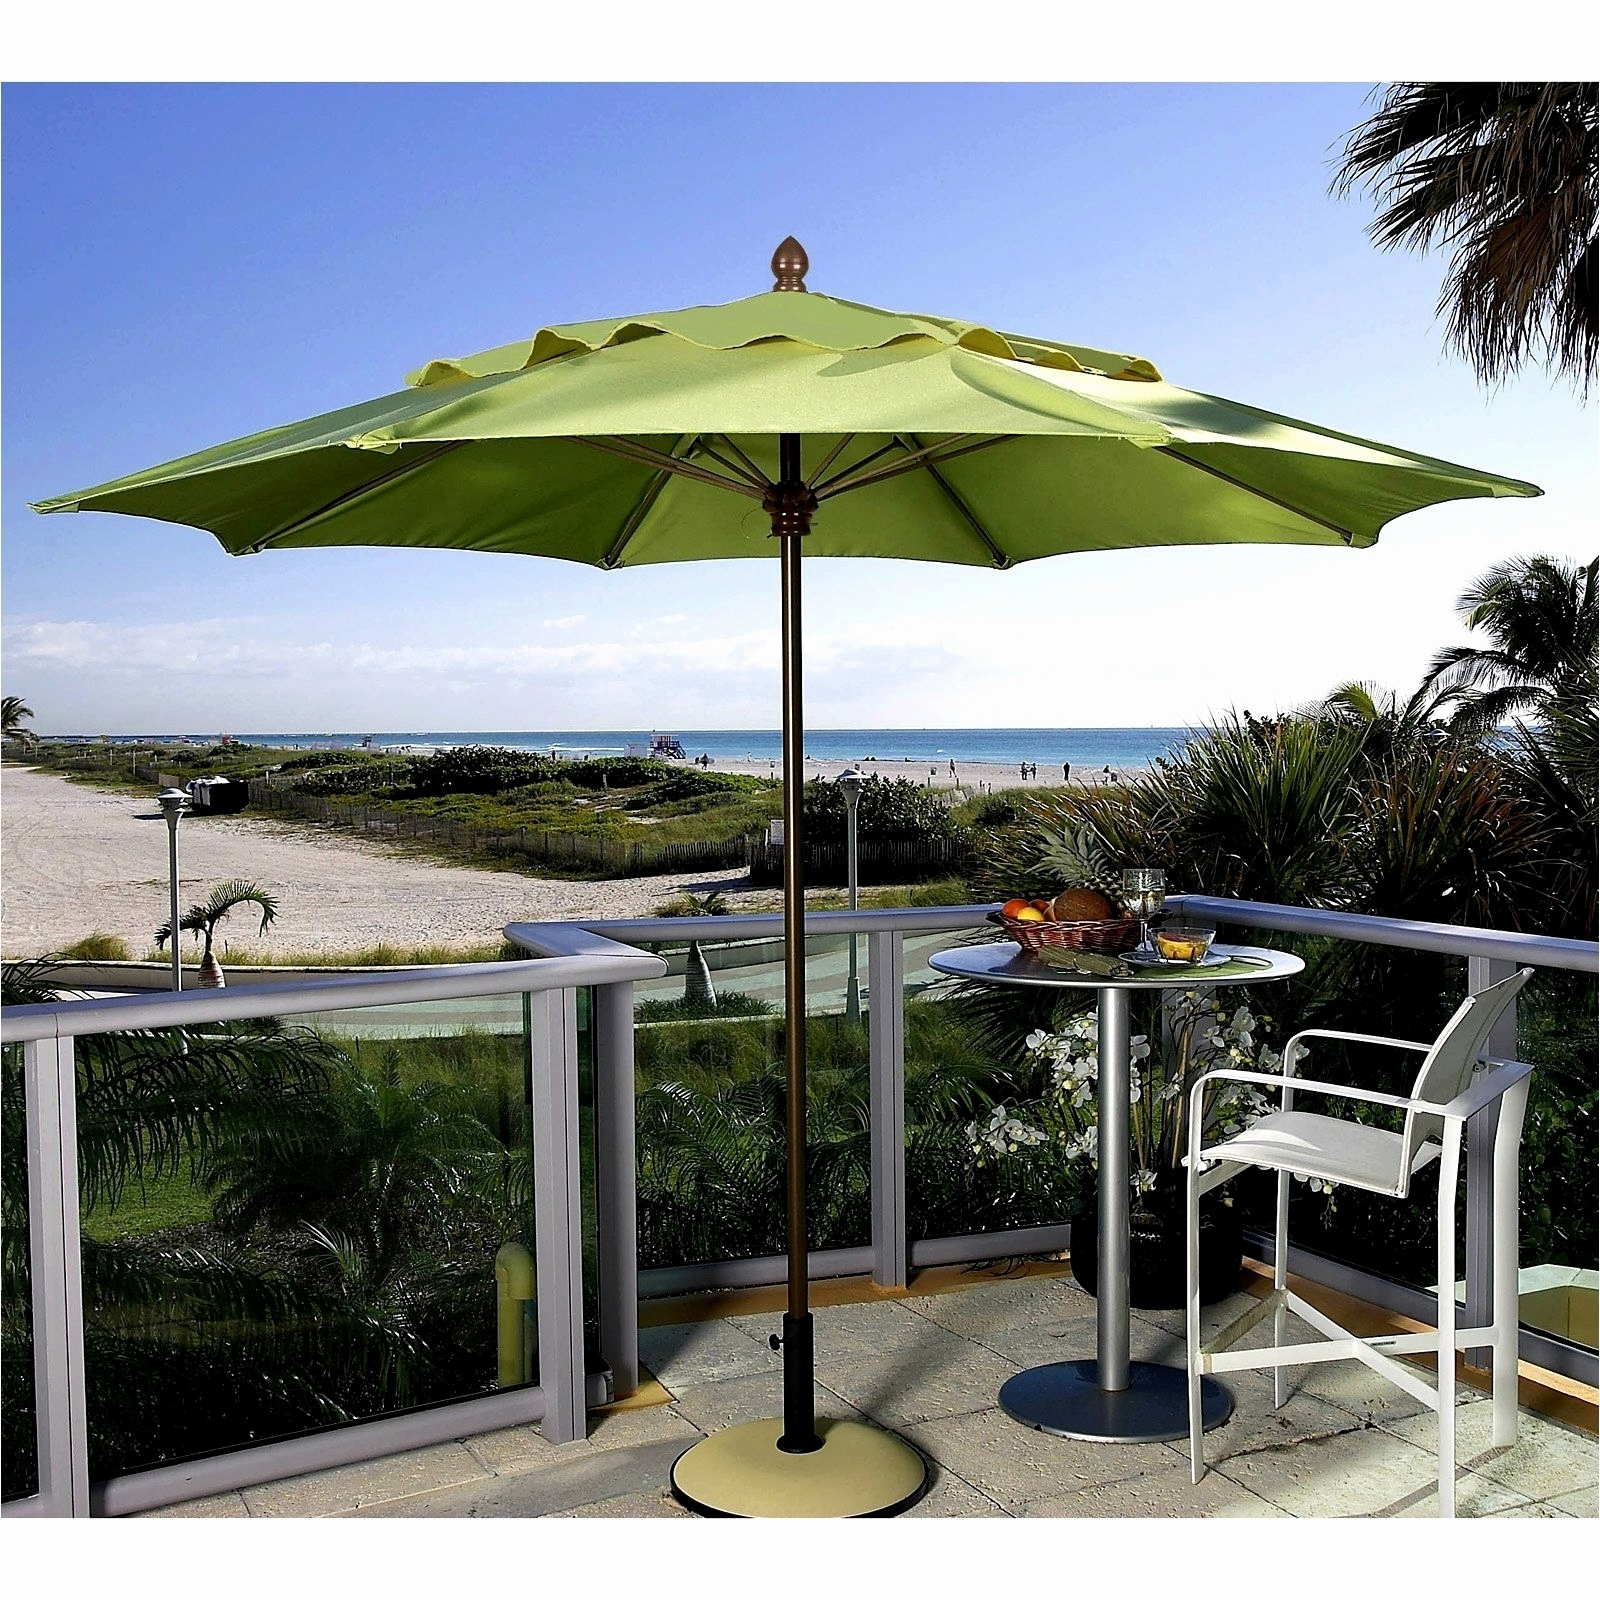 Famous Lovely Ideas Outdoor Umbrella Costco Ikea Patio Umbrella – Best Regarding Patio Umbrellas At Costco (View 8 of 20)